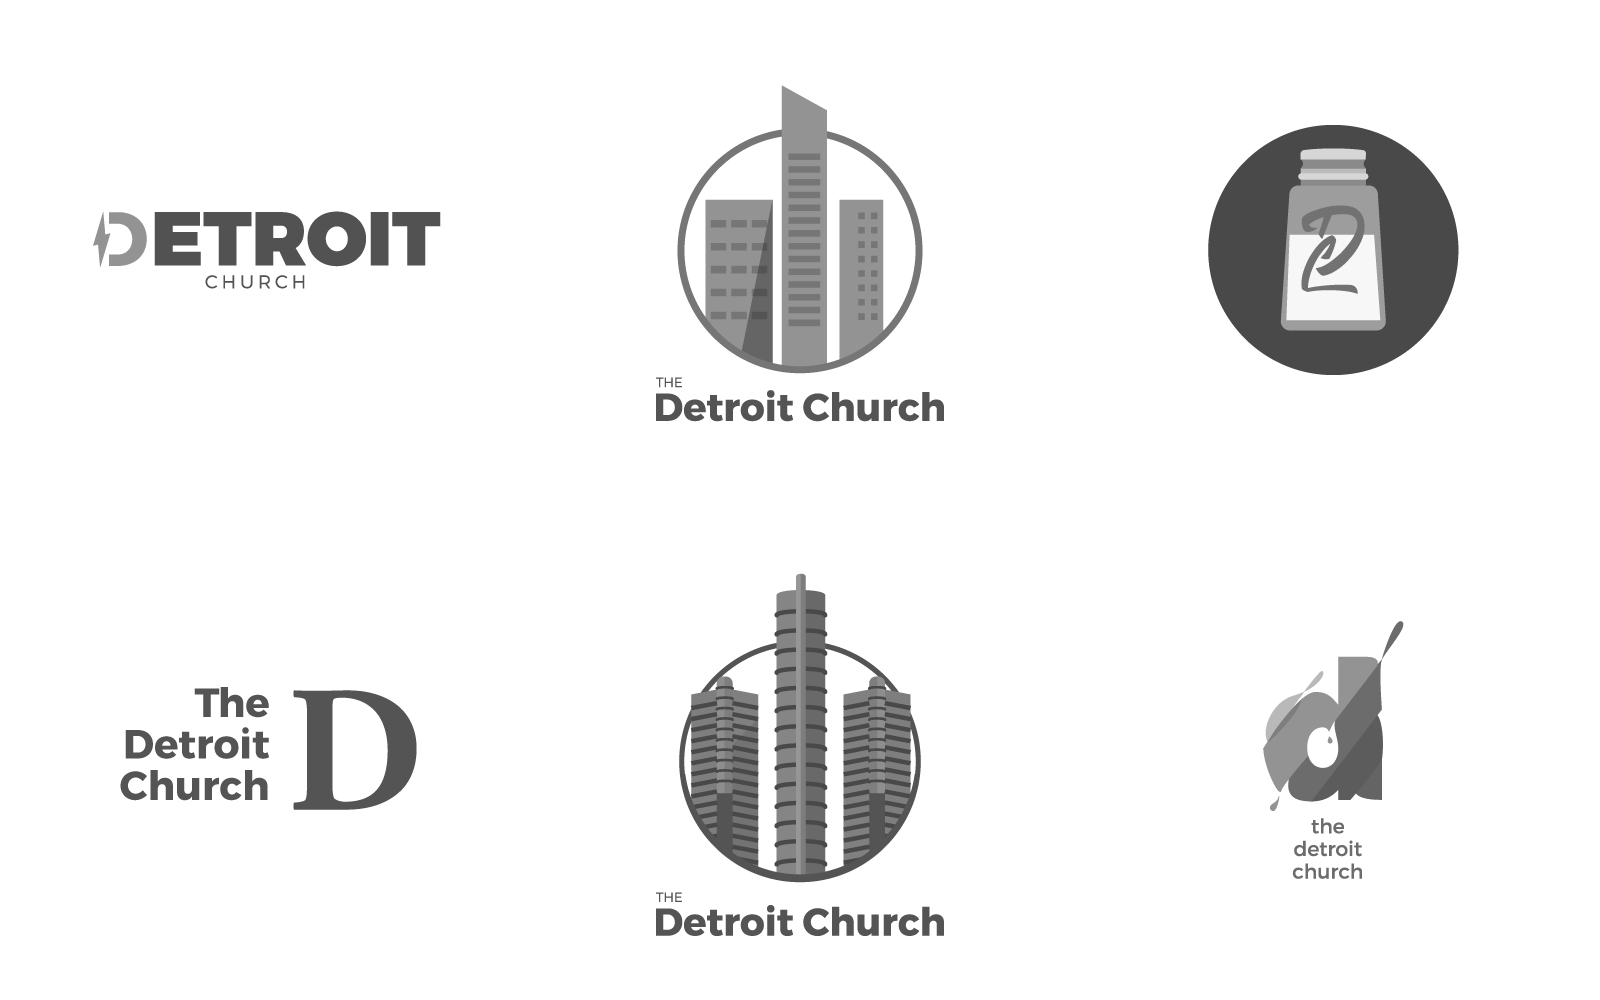 Exploring new marks to represent the church.